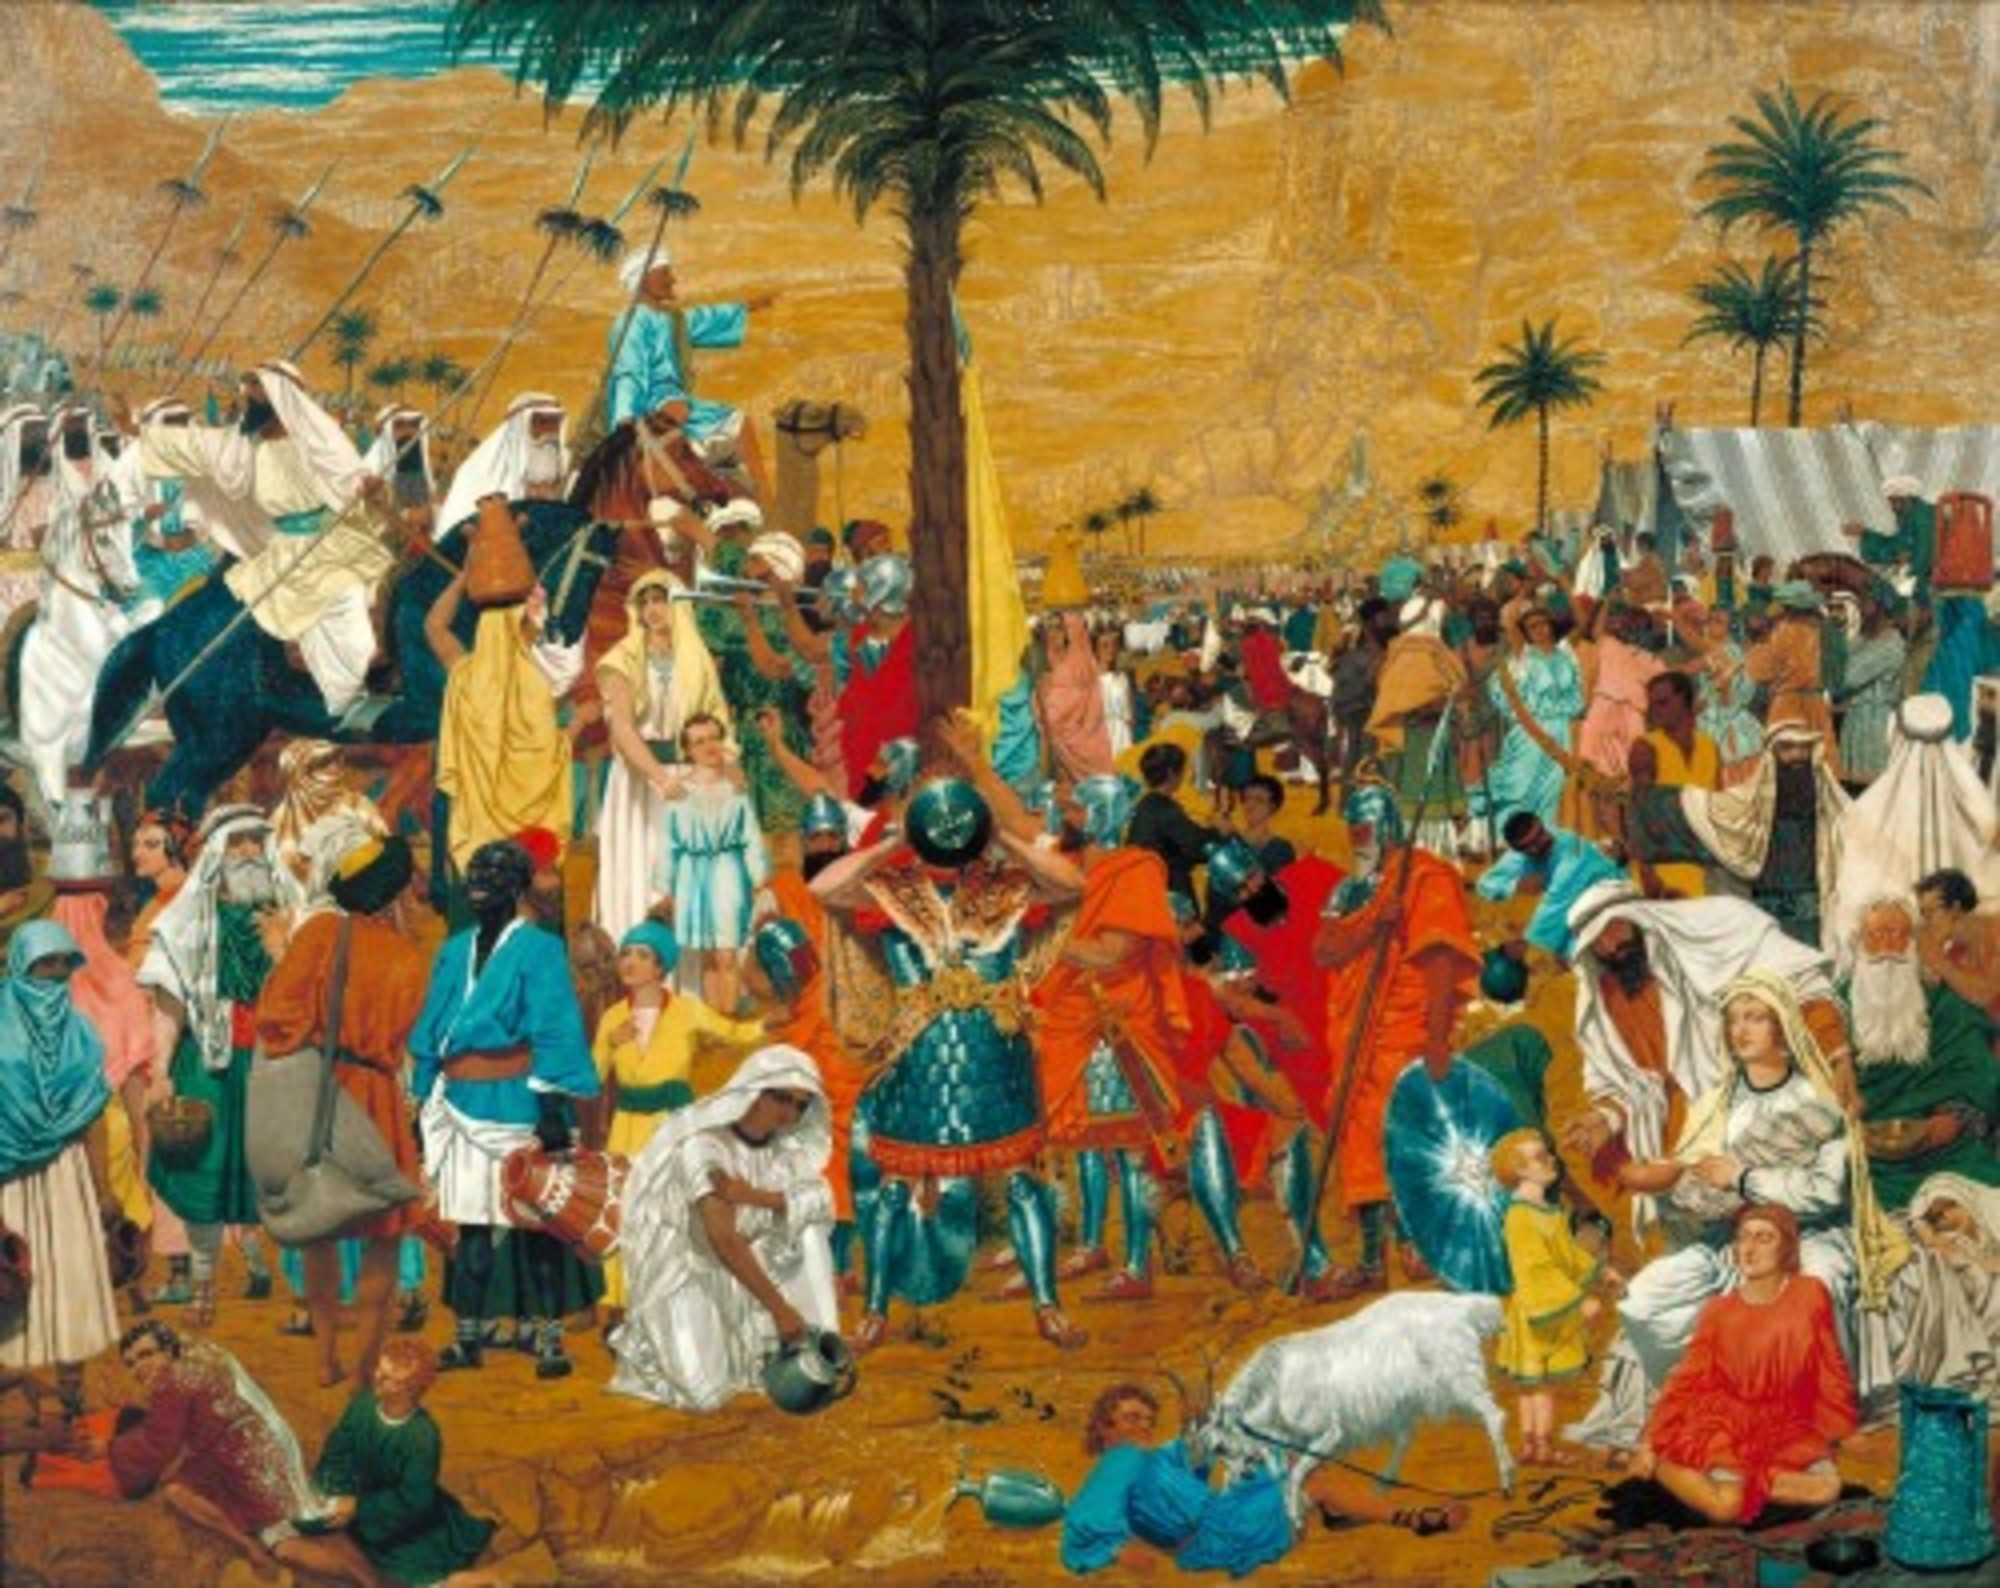 Richard-Dadd---The-Flight-out-of-Egypt-Tate-Britain.jpg